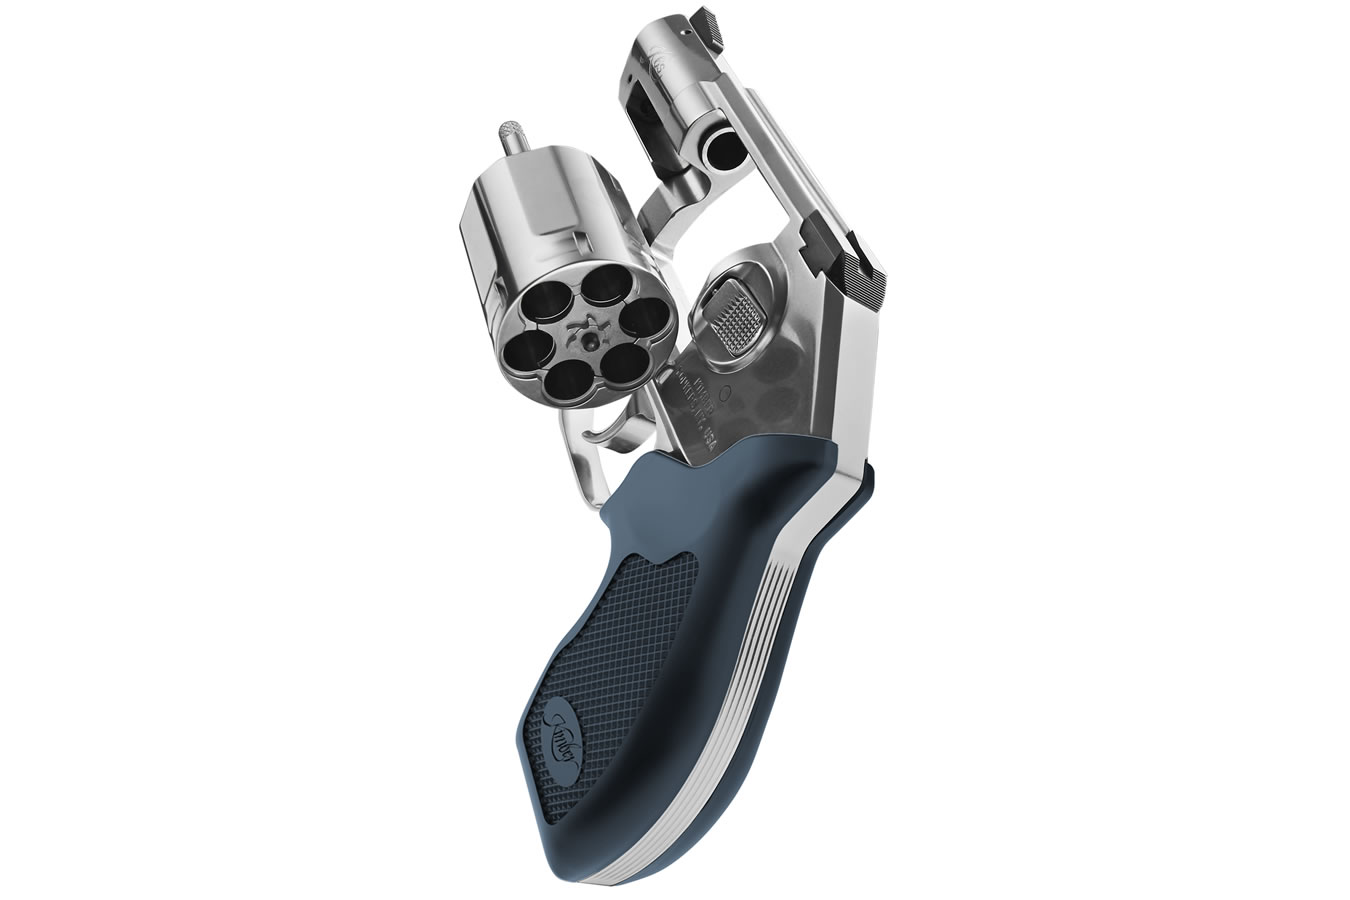 K6s Stainless 357 Magnum Double-Action Revolver